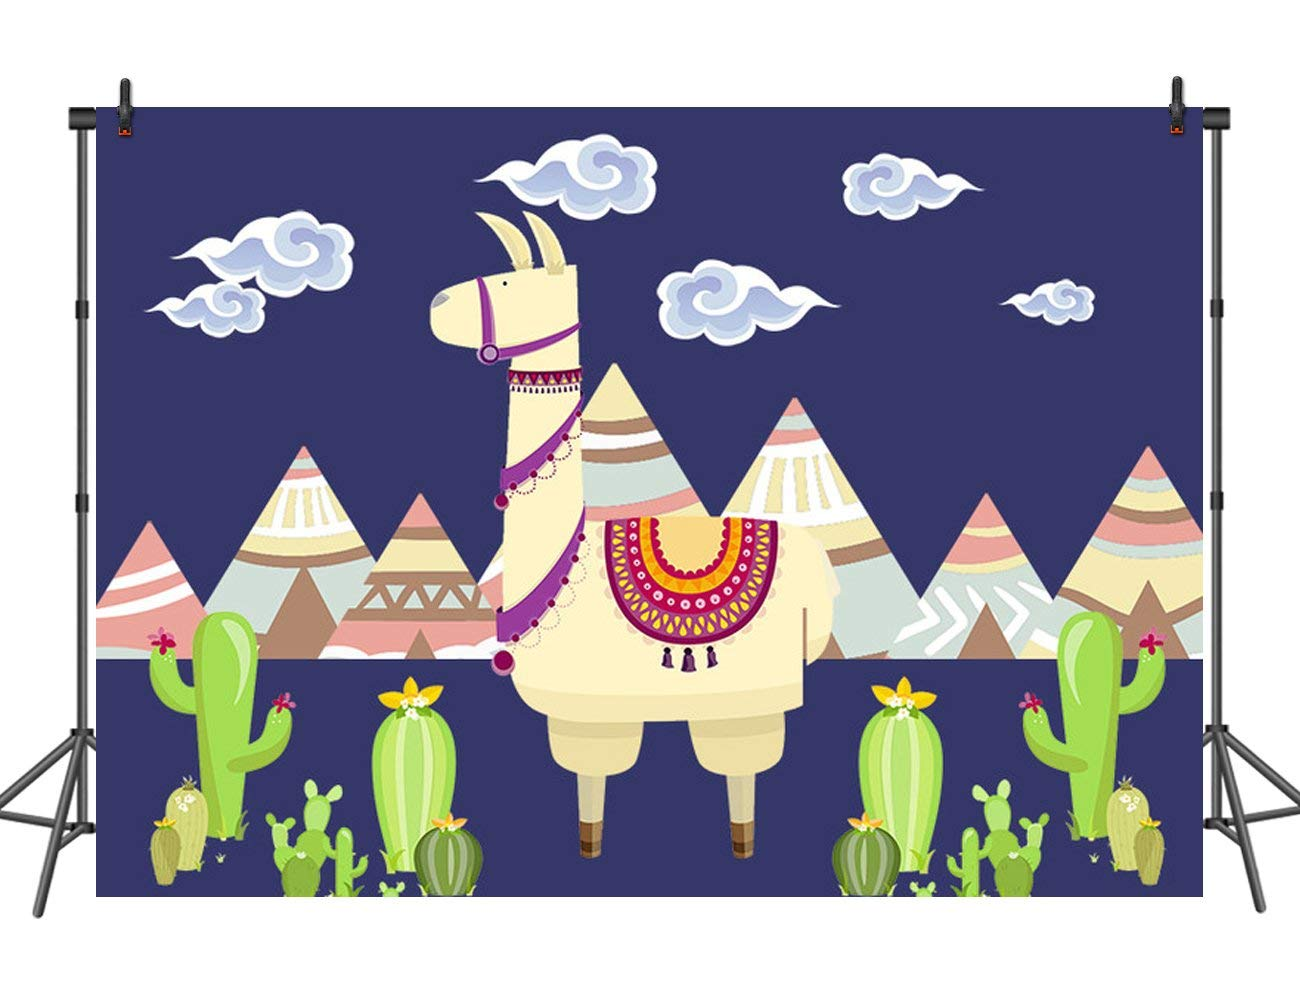 7x5ft Llama Backdrop with White Clouds Cactus Llama Themed Party Decoration Kids Birthday Party Supplies